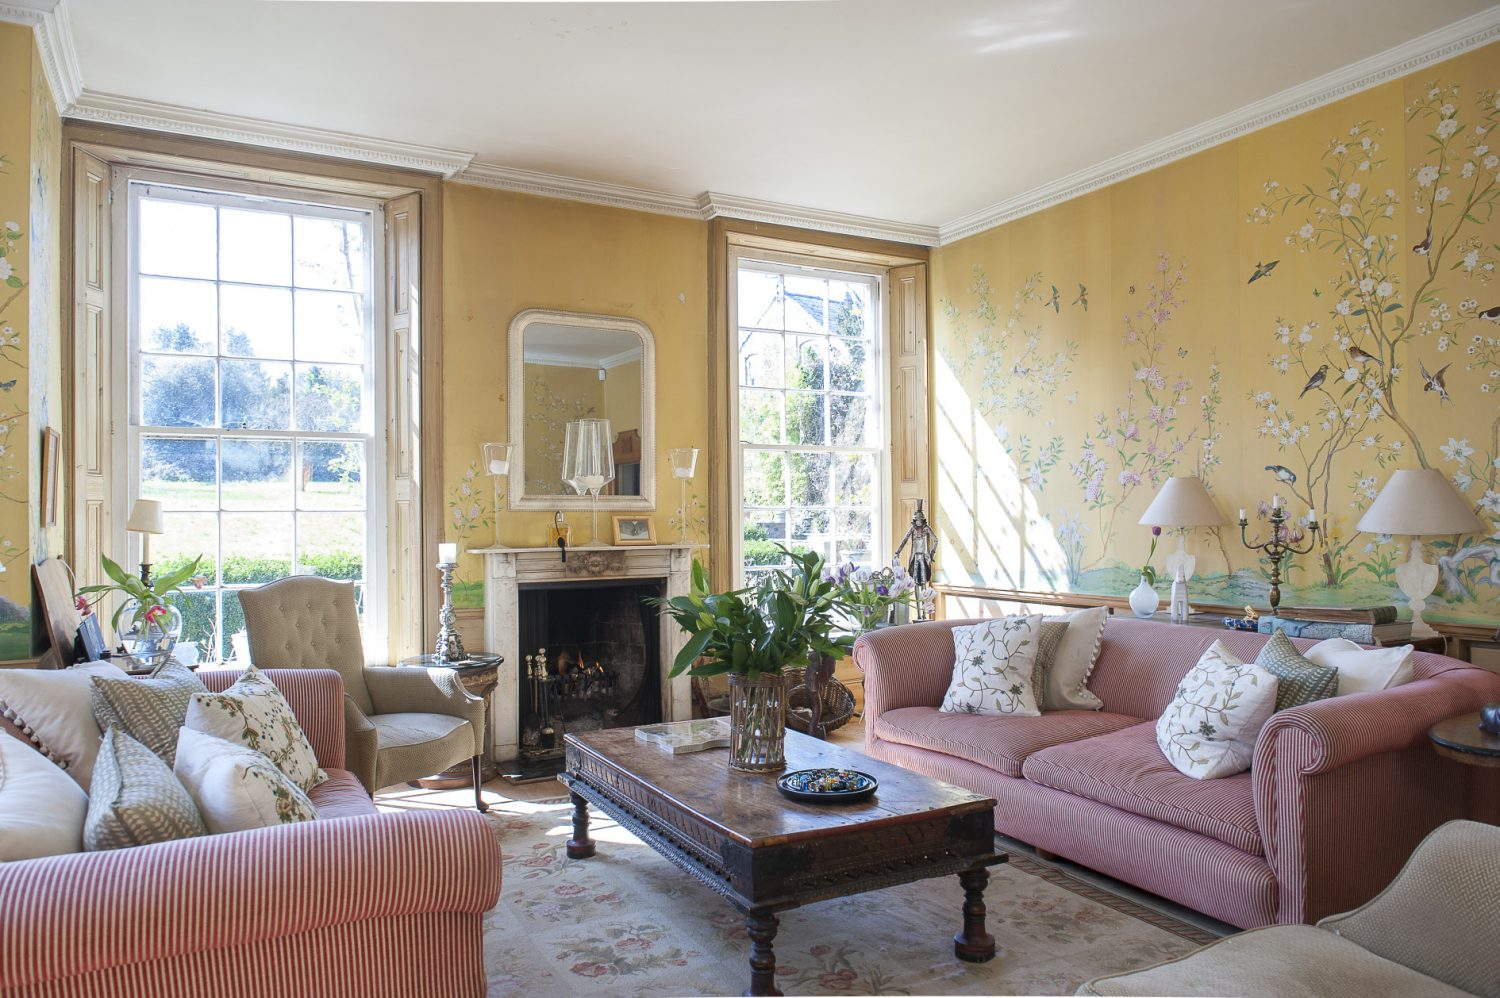 The drawing room, with its open fire and huge sash windows, overlooks the lawn and mature gardens. Christel has had the Conran sofas for many years, while the Indian 'elephant table' belonged to Lord Cowdrey and came from Bangalore. Josef Holst painted the Chinese-style murals